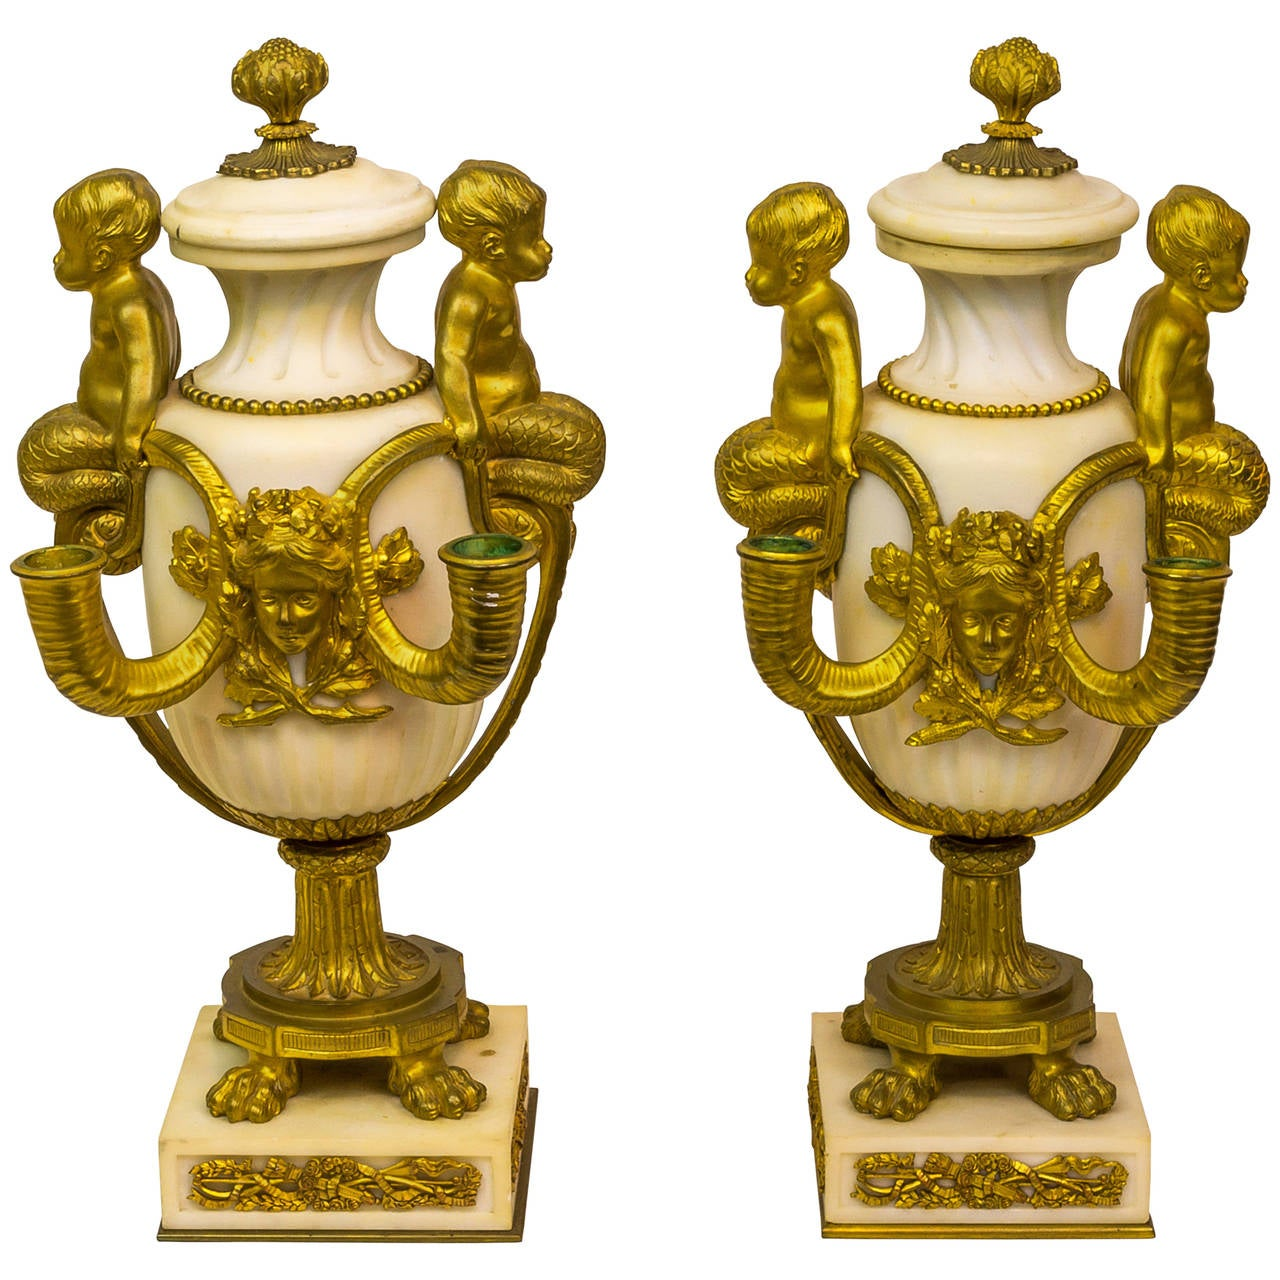 Pair of Louis XV Style Gilt Bronze and Marble Figural Urns